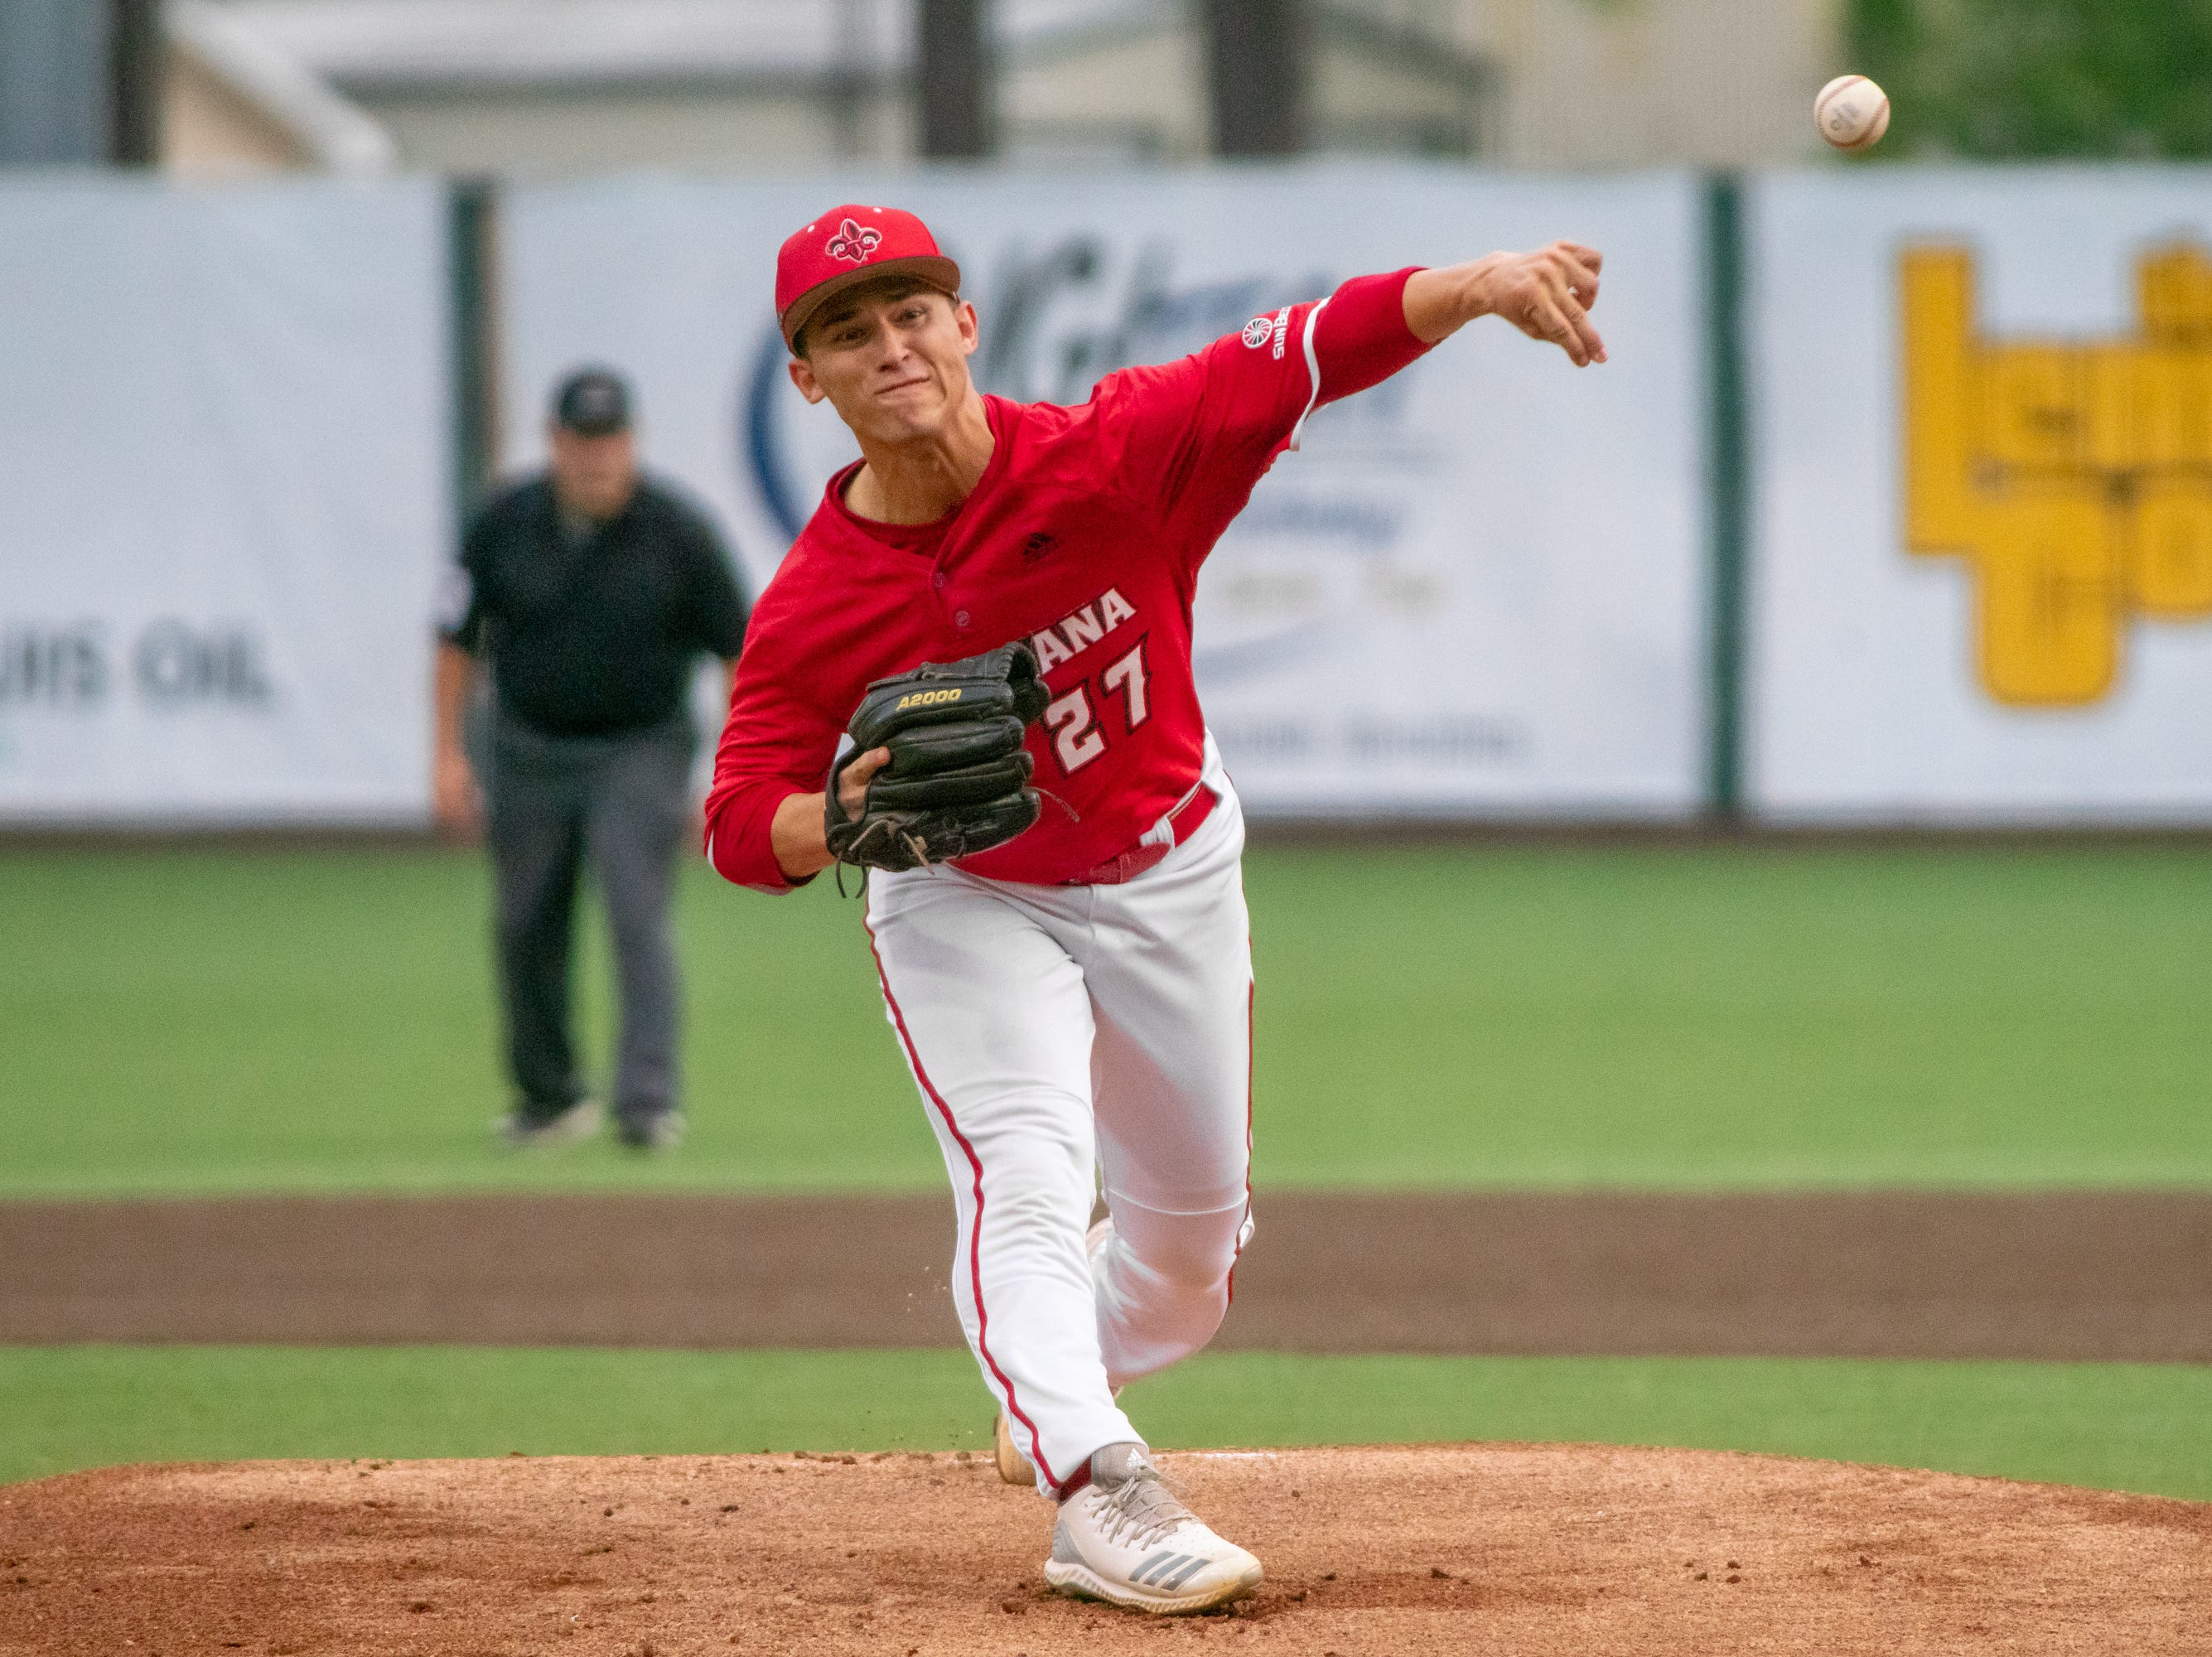 """UL's pitcher Austin Perrin throws to the batter as the Ragin' Cajuns take on the South Alabama Jaguars at M.L. """"Tigue"""" Moore Field on Friday, April 4, 2019."""